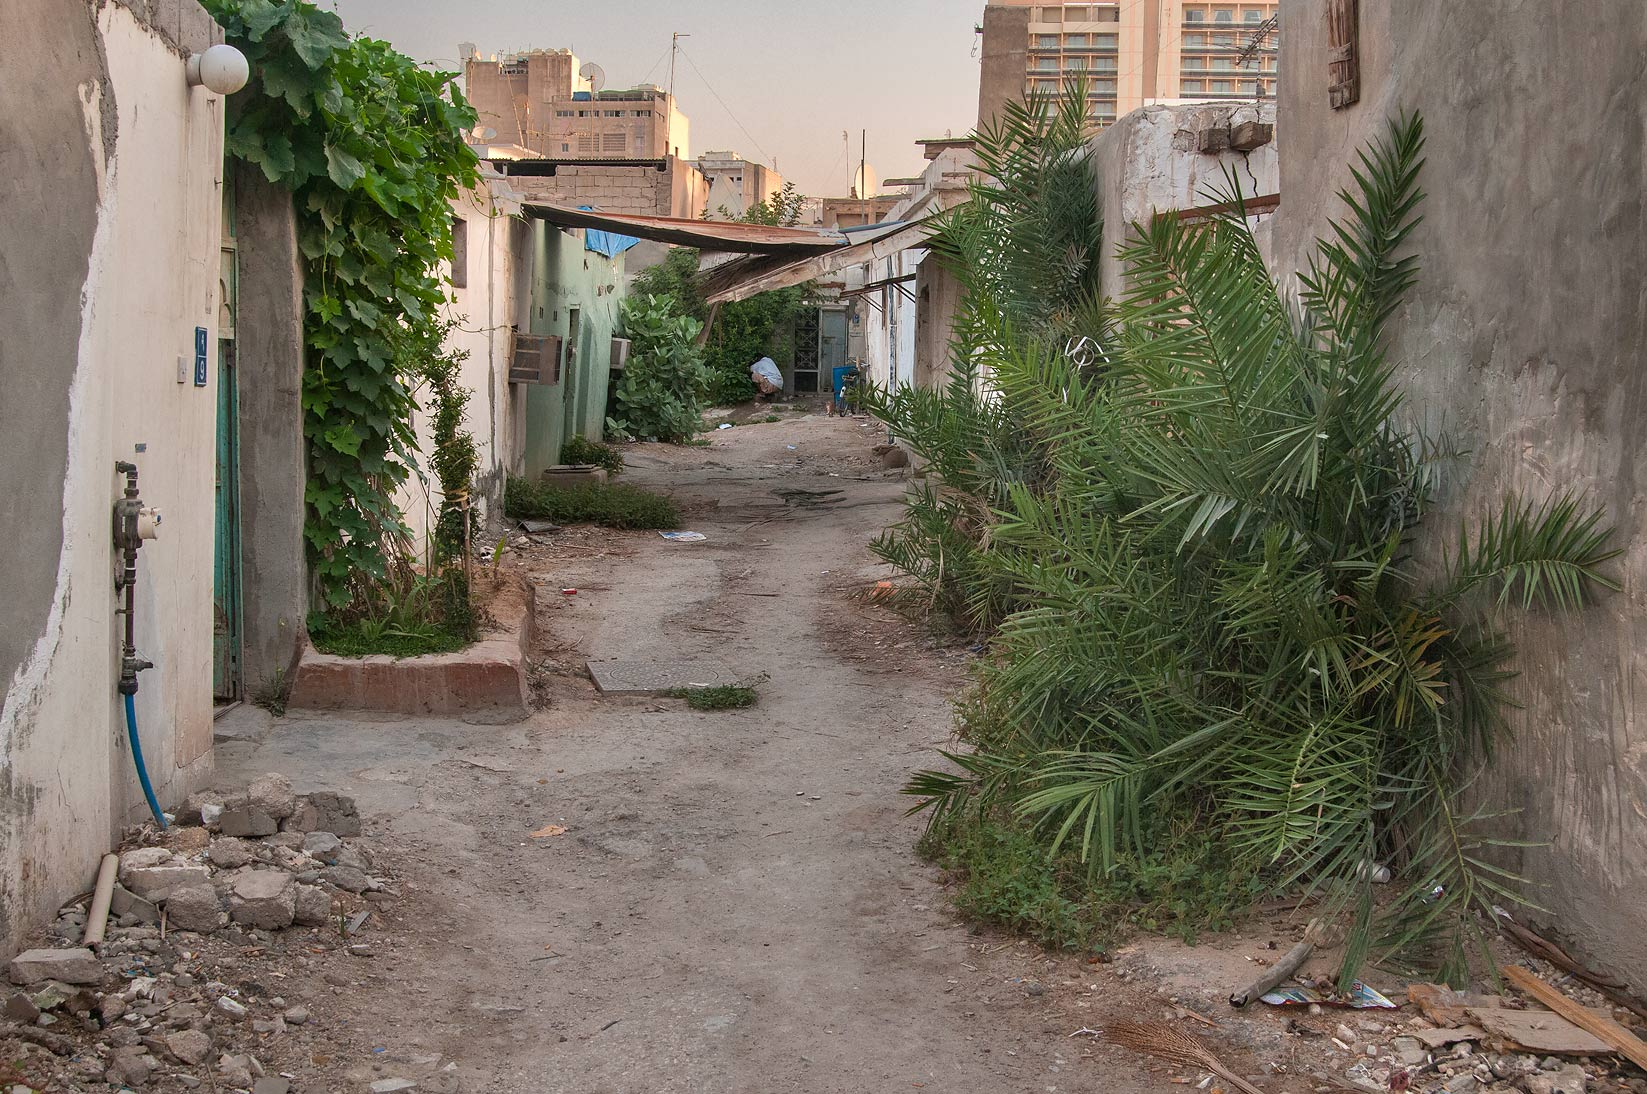 Alley (sikka) with palms trees (Phoenix dactylifera) in Musheirib area. Doha, Qatar